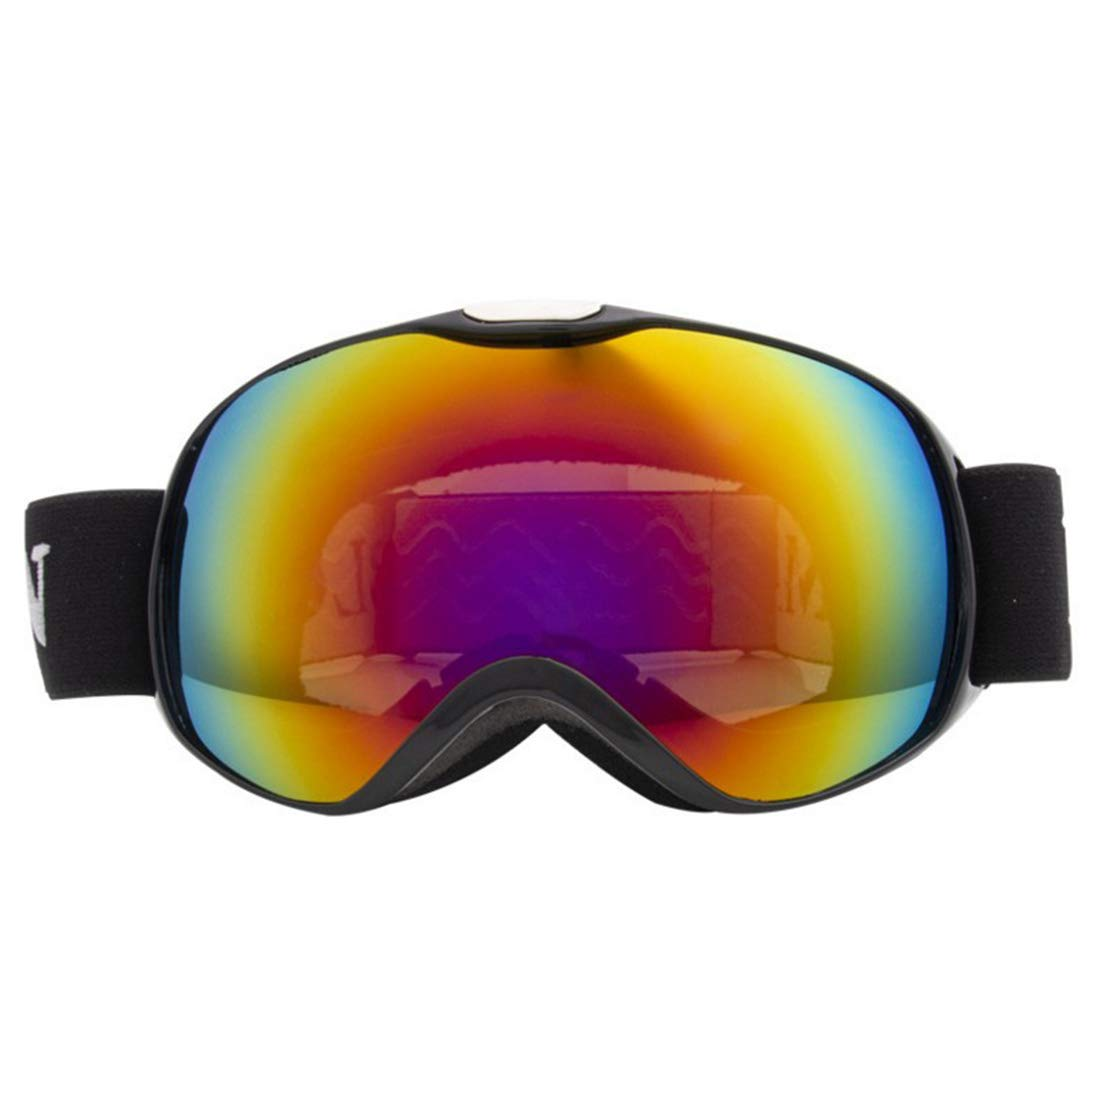 Black Sububblepper Ski Goggles, Gonex Snow Snowboard Goggles for Men Women Youth AntiFog with Windproof AntiUV (color   bluee)